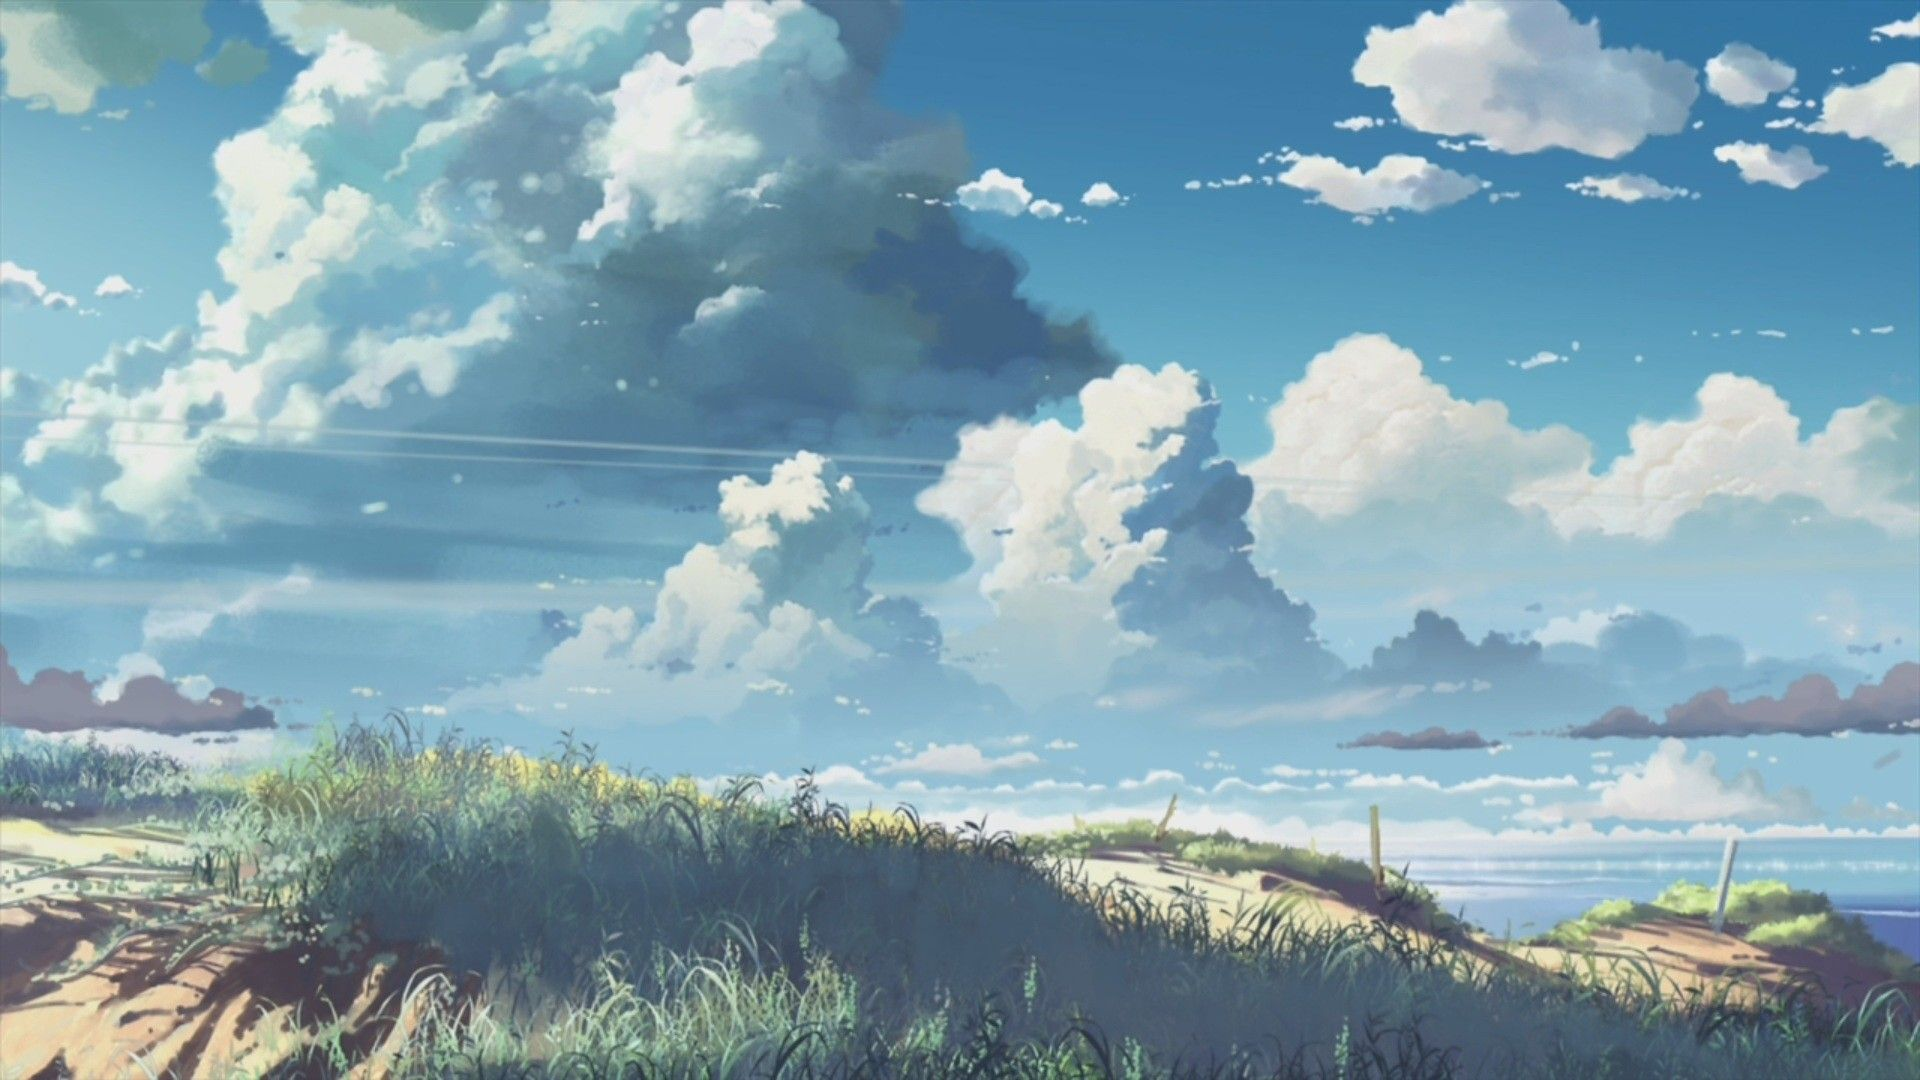 Anime Nature Wallpapers Top Free Anime Nature Backgrounds